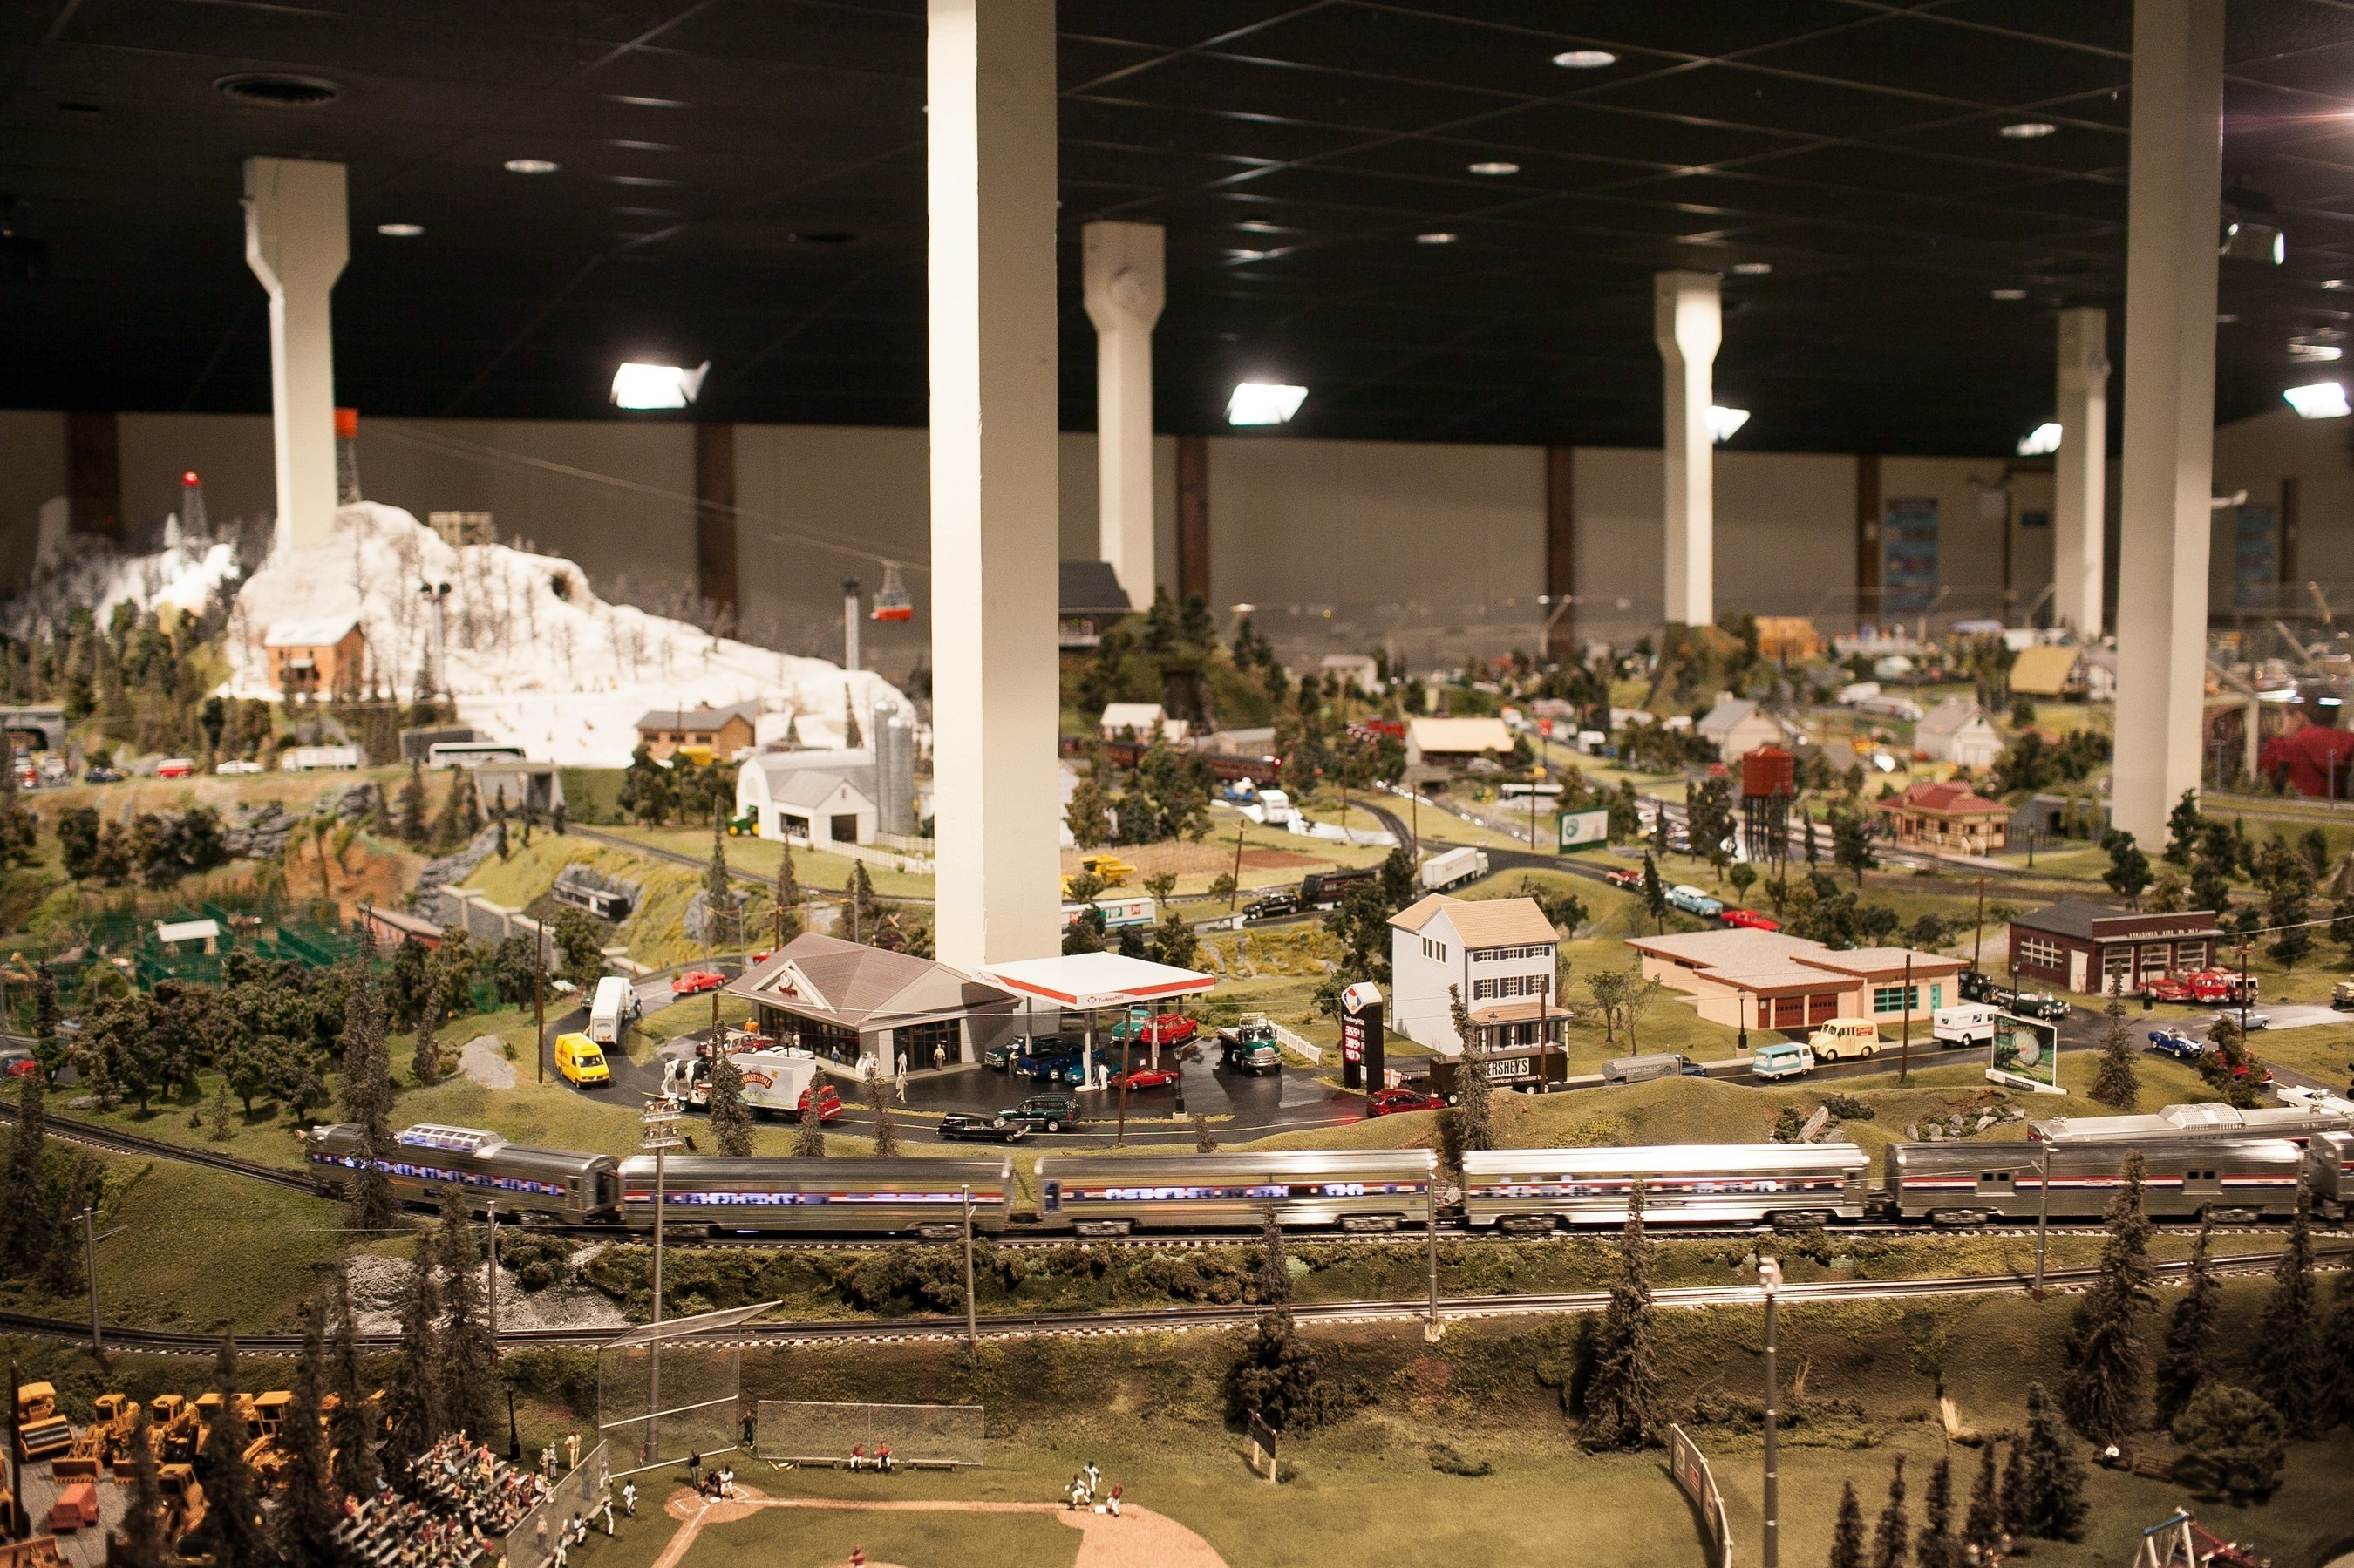 The Gigantic Model Railroad at the Choo Choo Barn (PRNewsFoto/Choo Choo Barn)